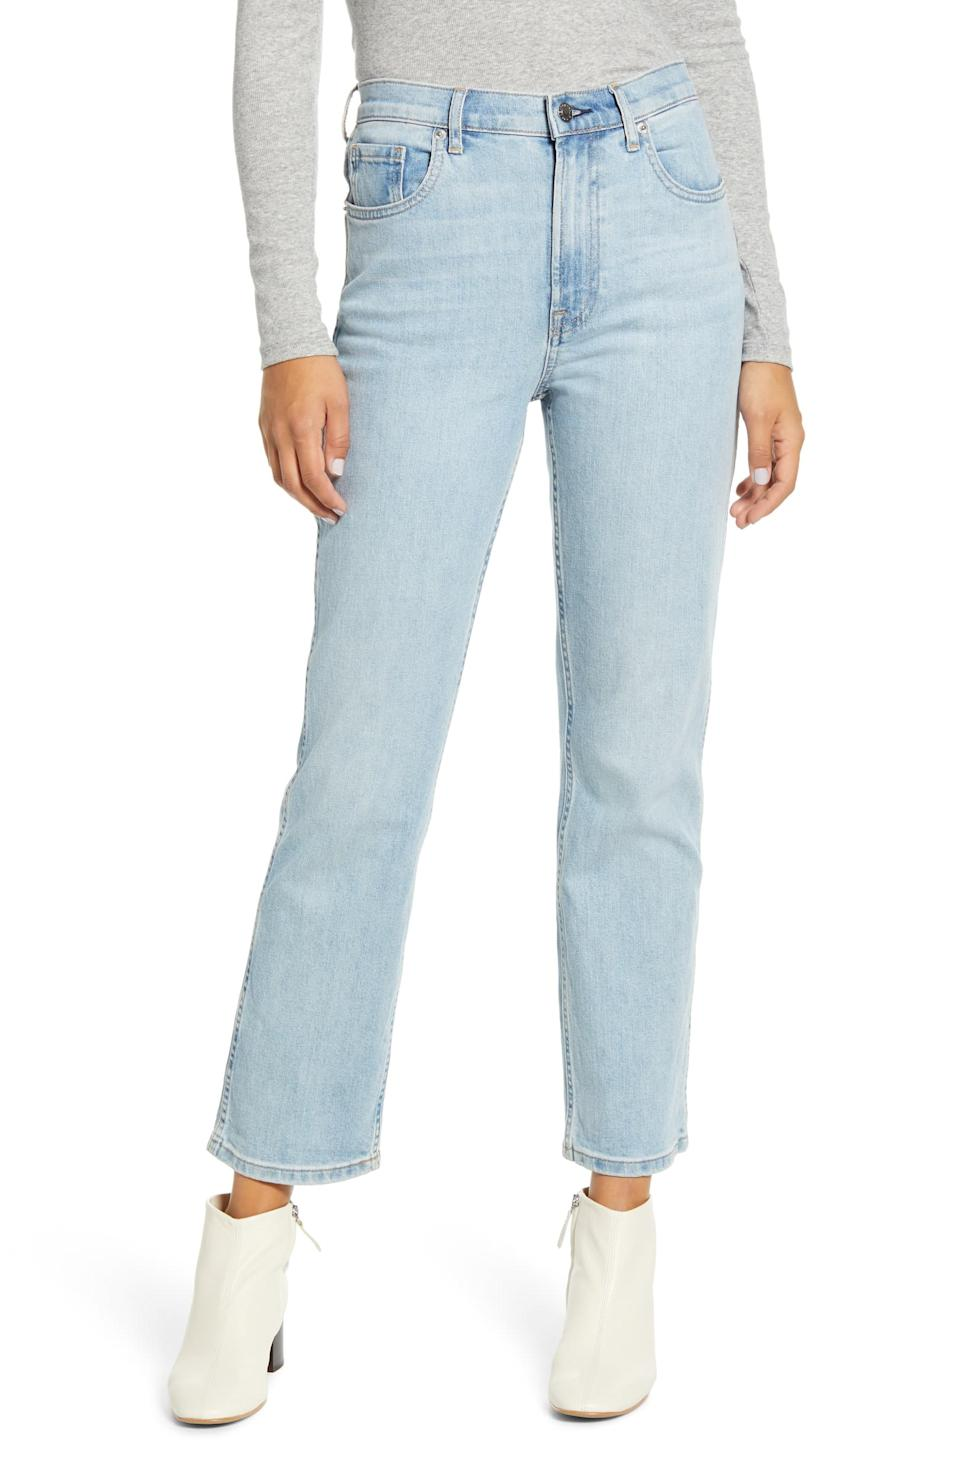 Everlane The Cheeky Bootcut Jeans